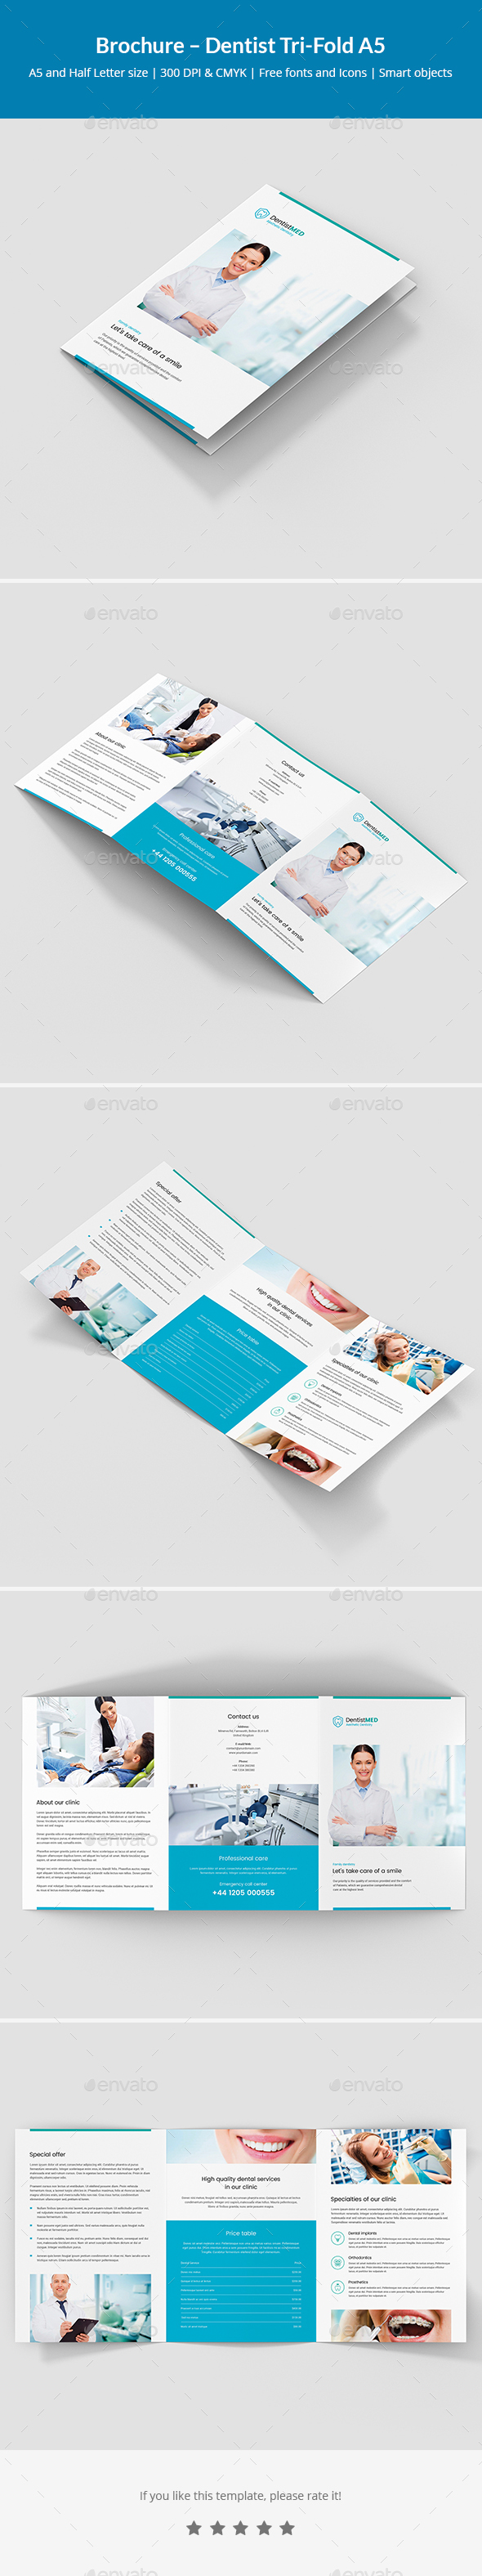 GraphicRiver Brochure Dentist Tri-Fold A5 21130947